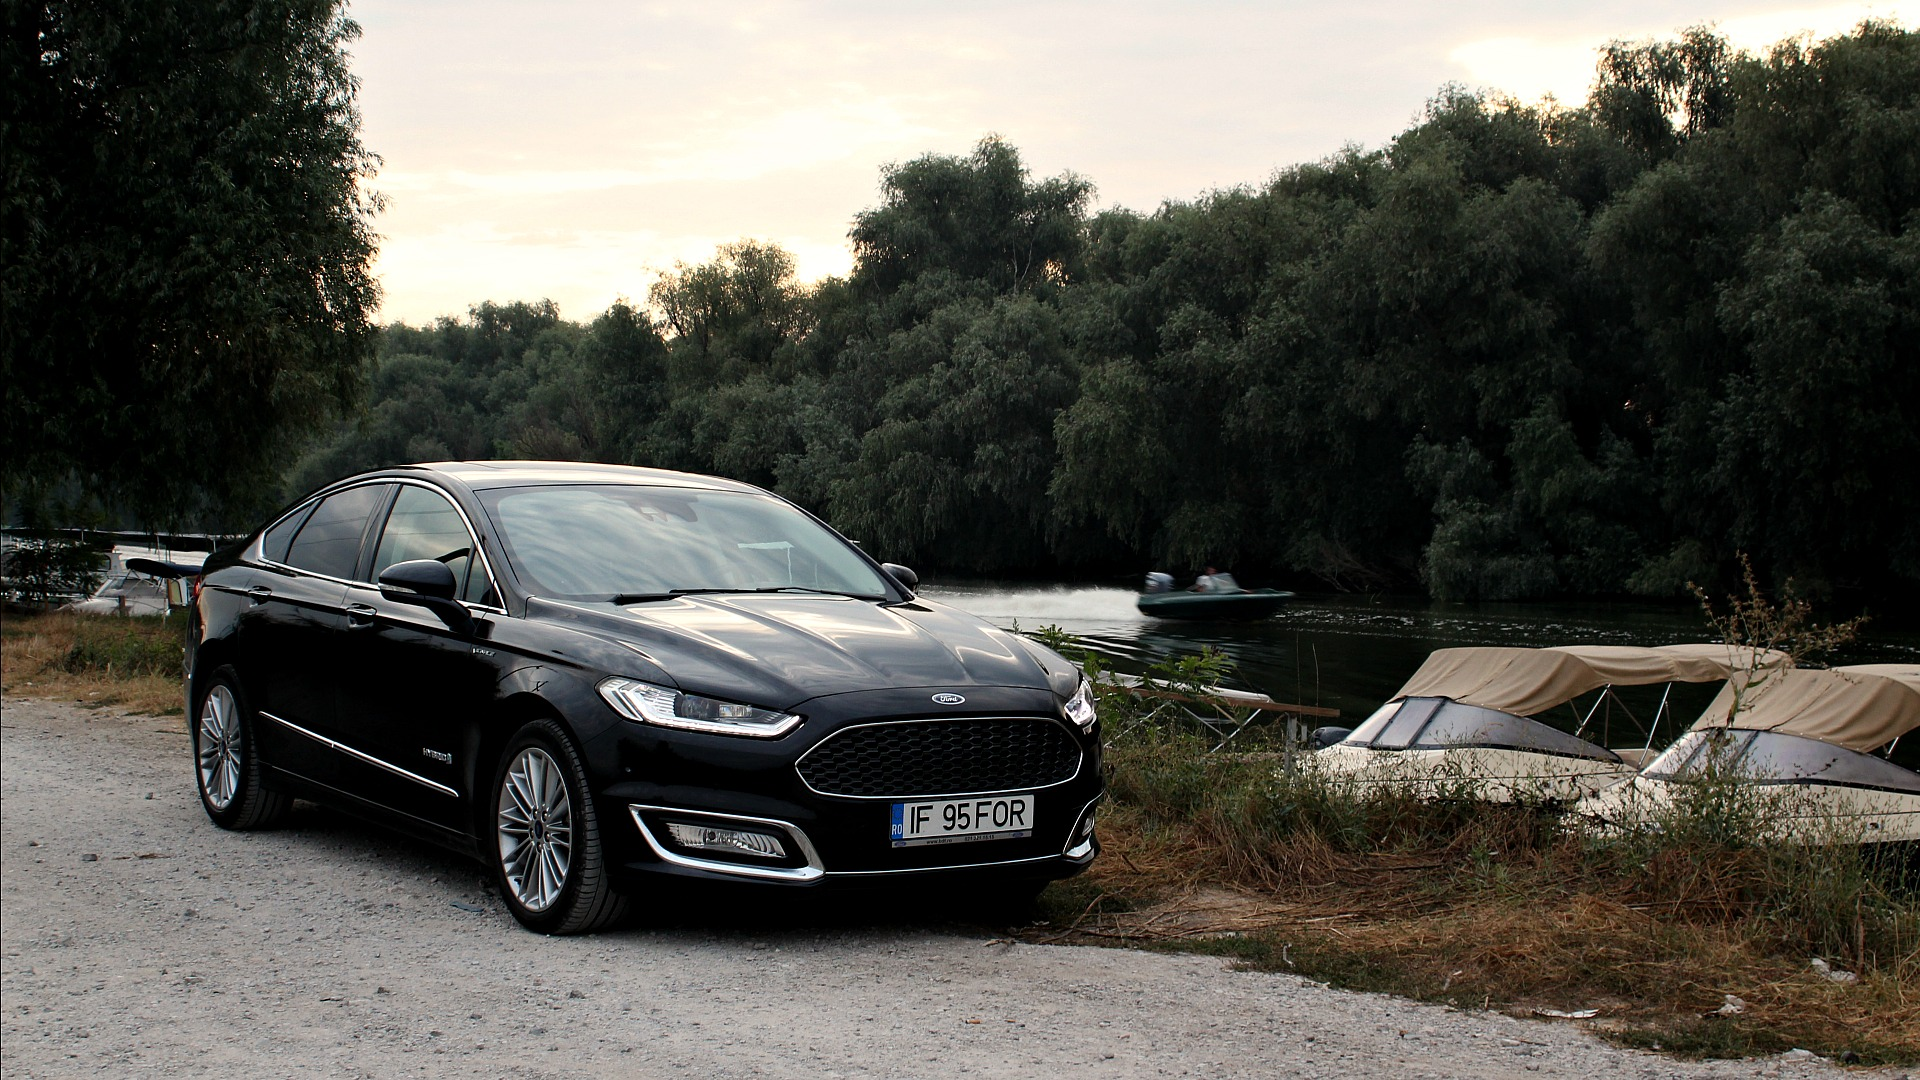 ford mondeo vignale hybrid review hi tech lifestyle. Black Bedroom Furniture Sets. Home Design Ideas